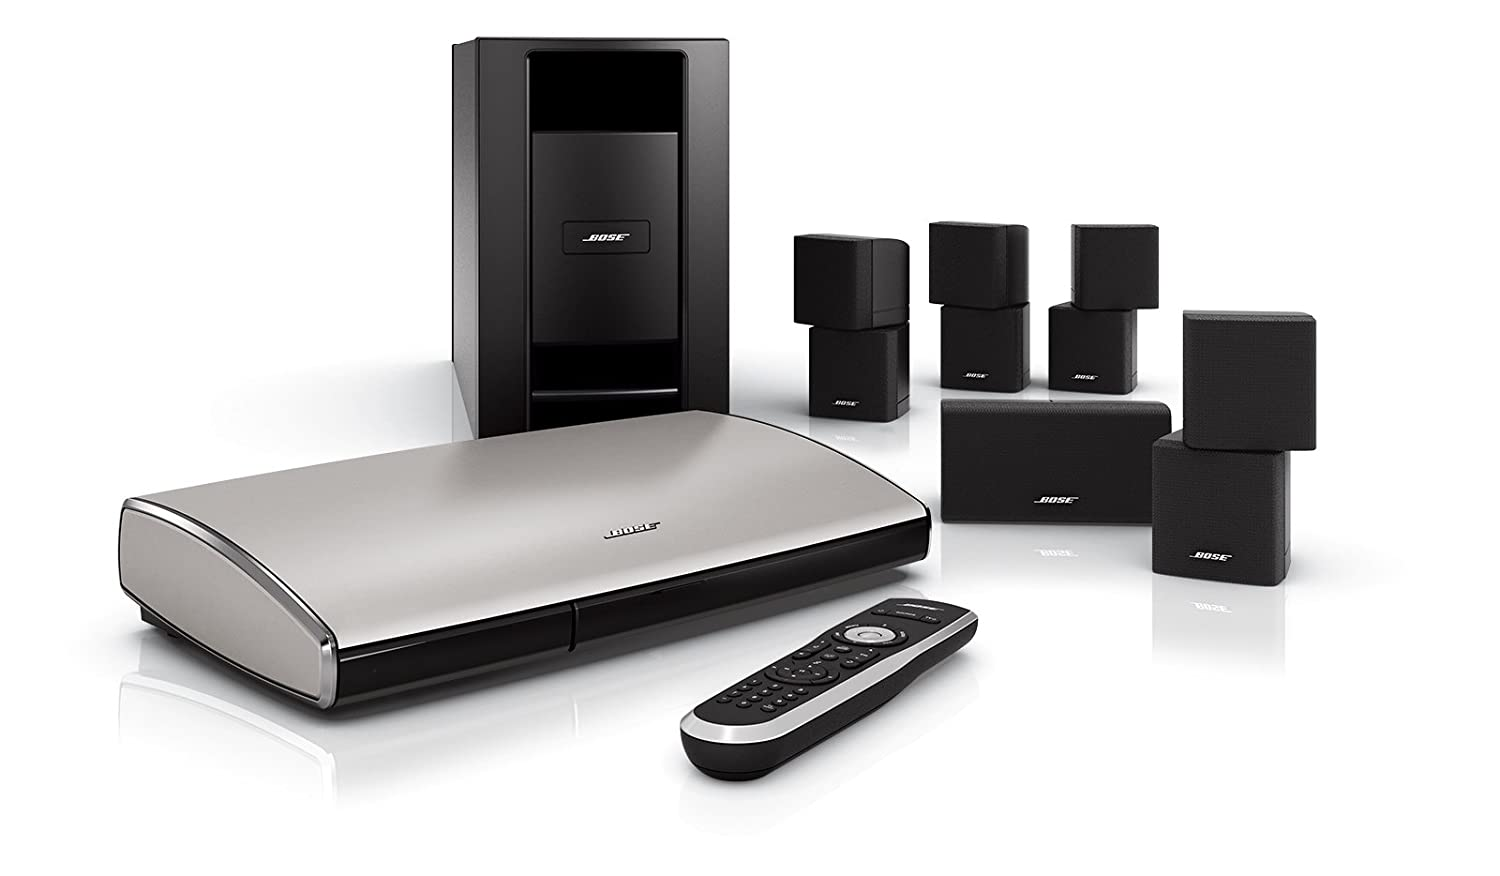 amazon com bose lifestyle t20 home theater system black rh amazon com Wireless 5.1 Surround Sound System Bose Wireless Surround Sound